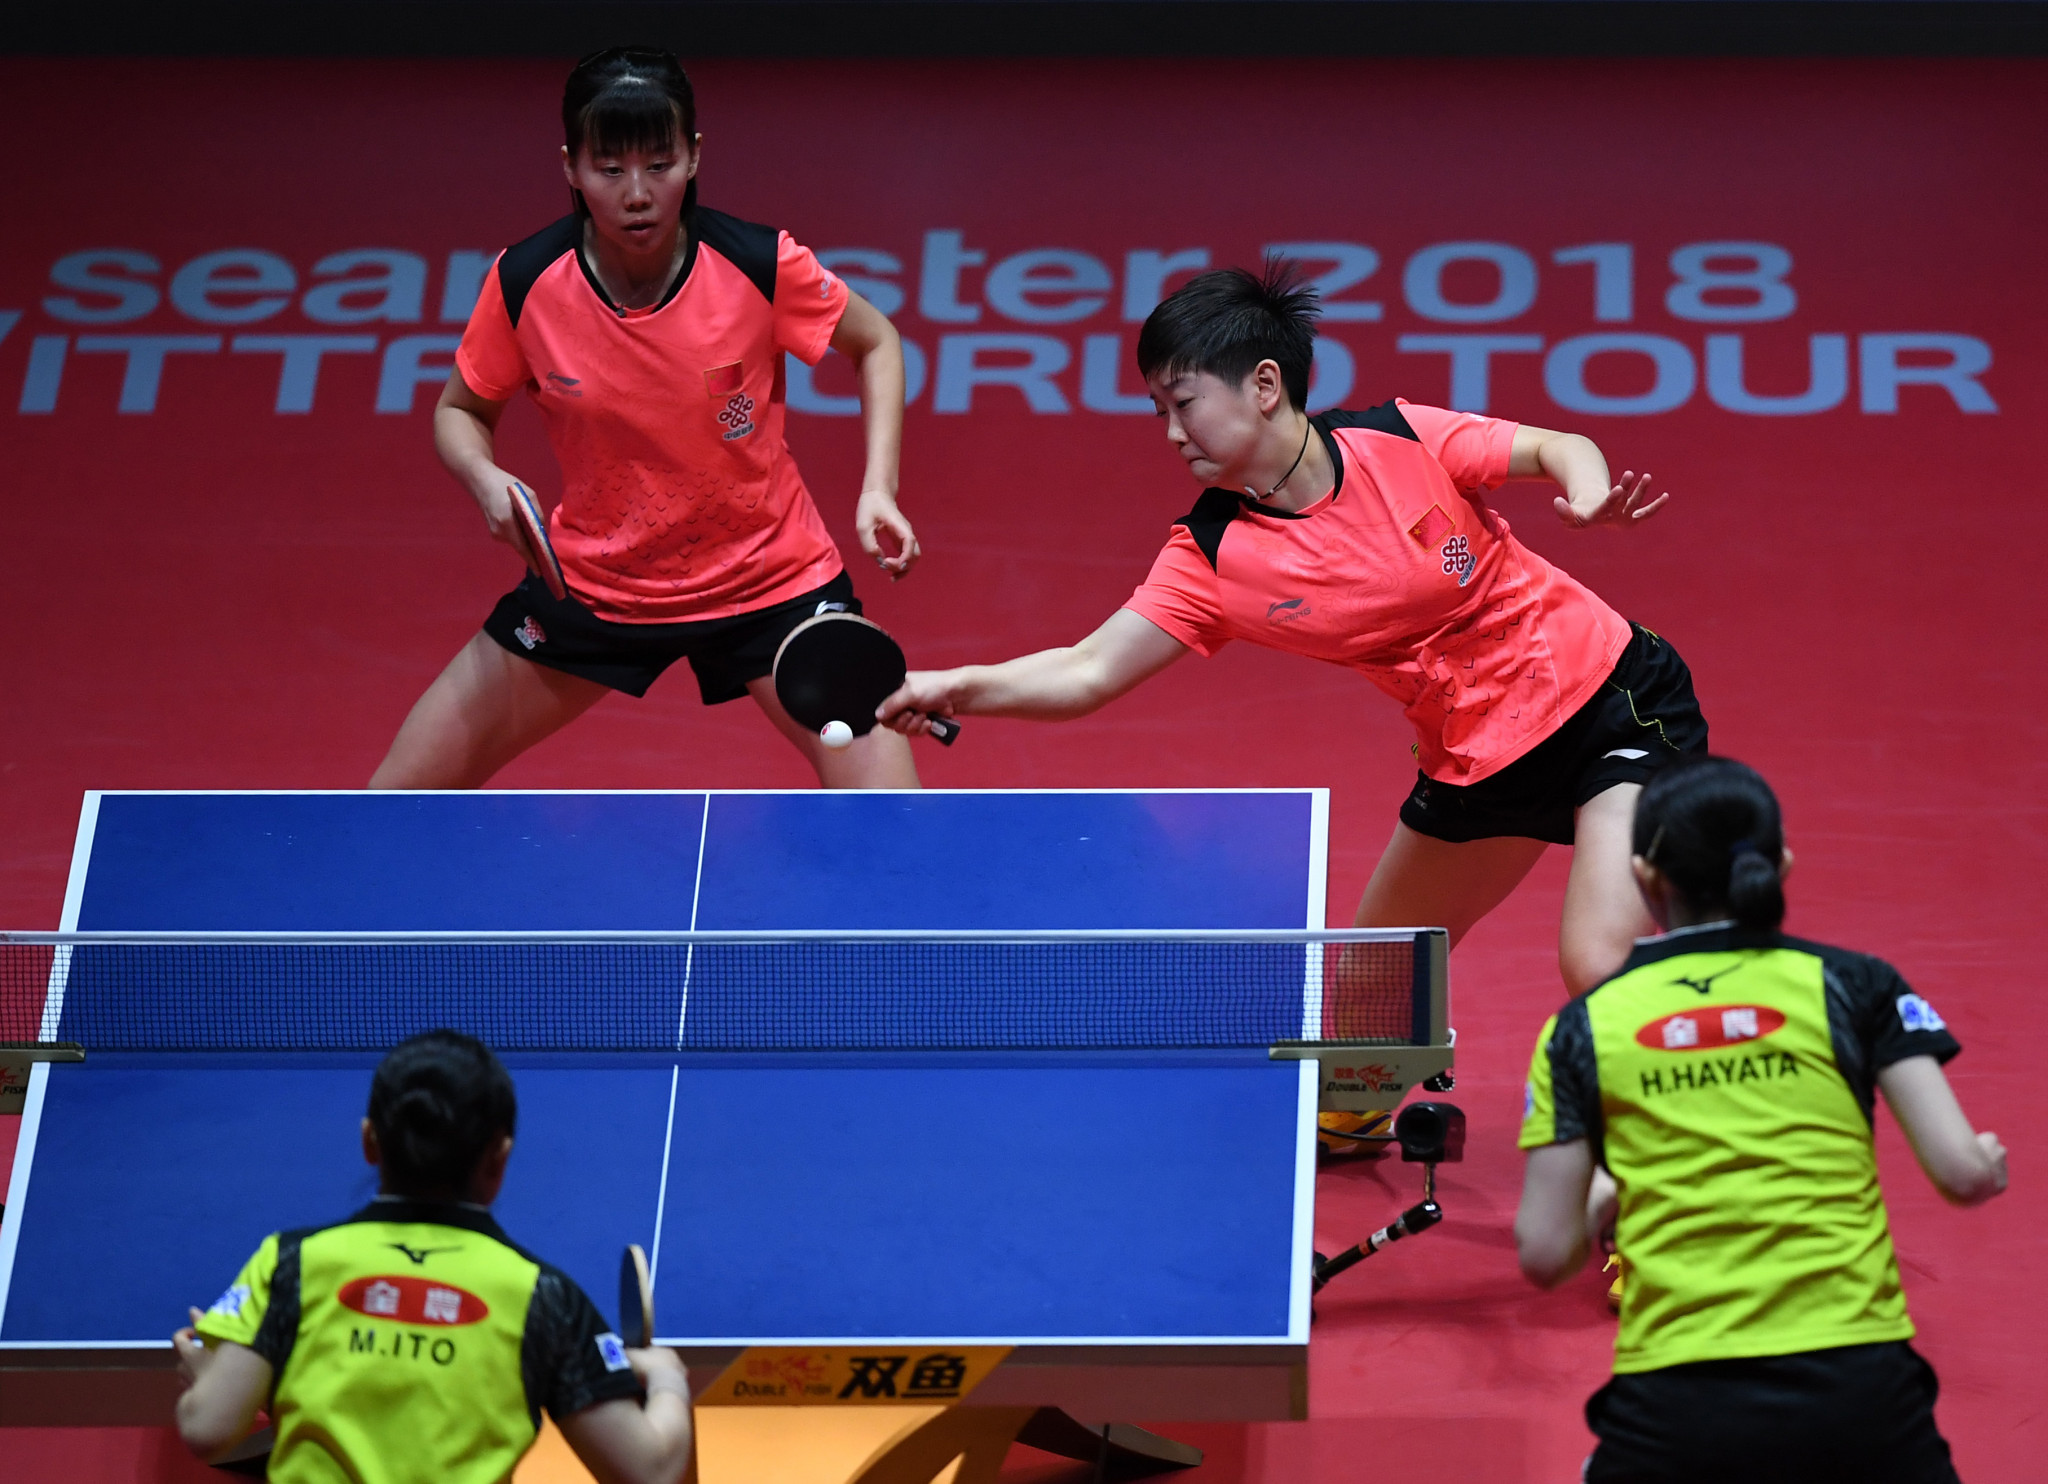 ITTF post record-breaking audience and engagement numbers for 2018